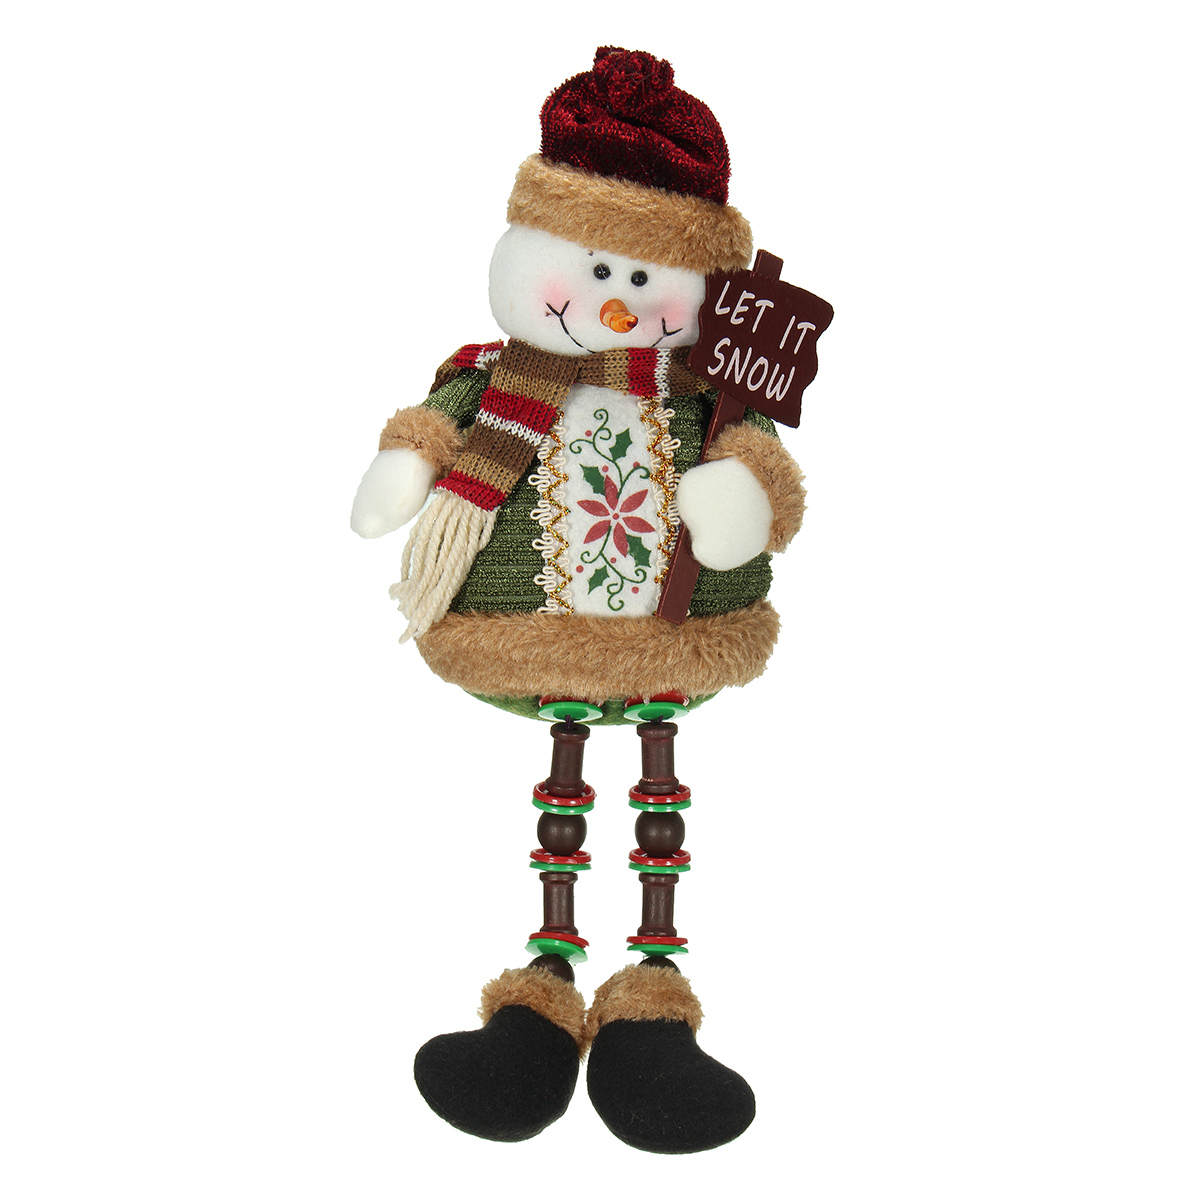 Christmas Home Decoration Sitting Cute Snowman Ornament Flannel Toy Gift - Photo: 2